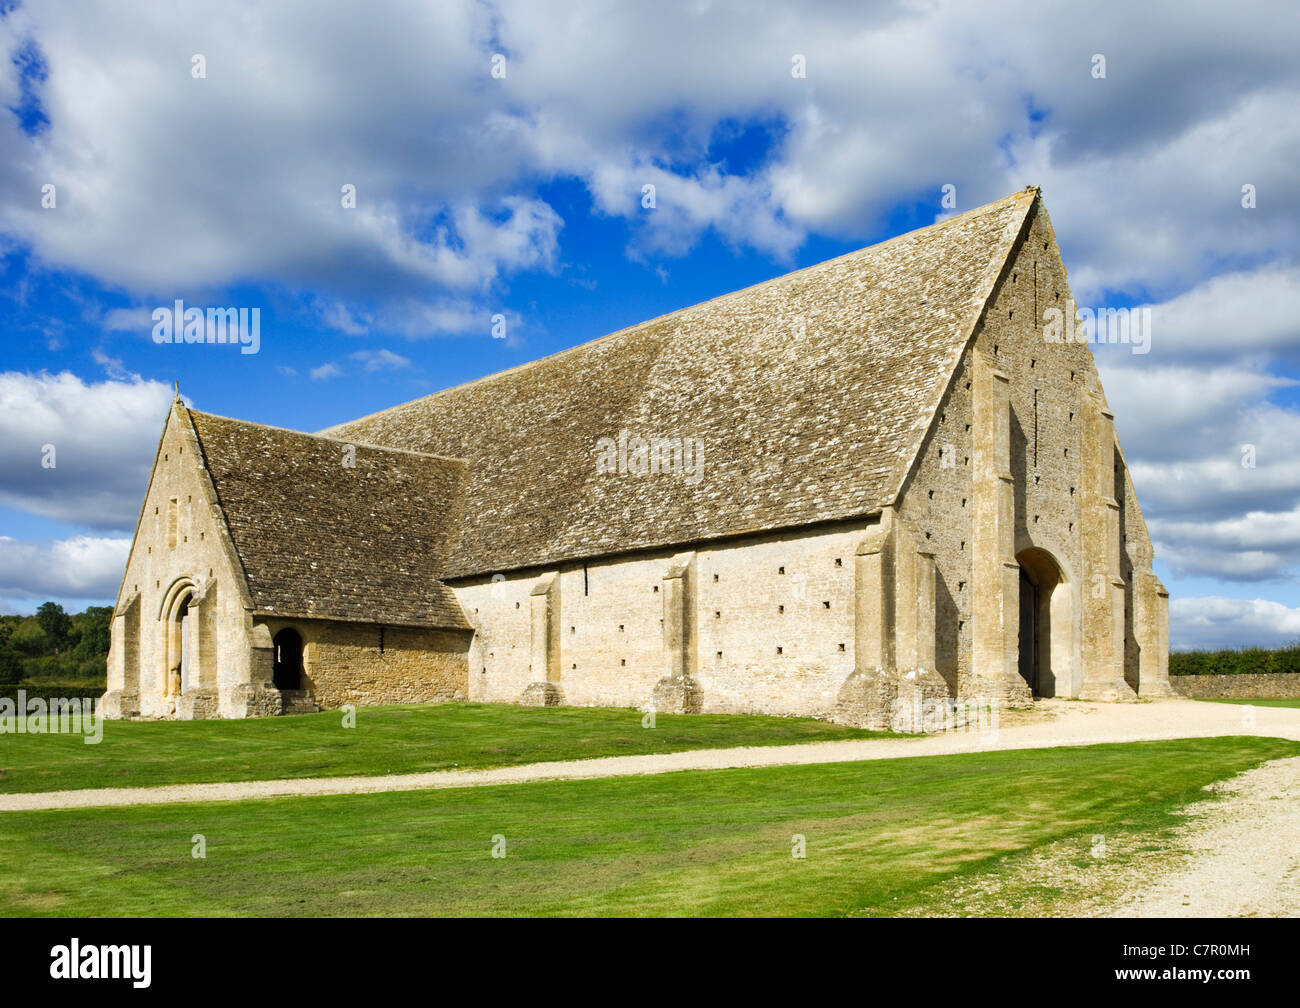 Great Coxwell Barn, Oxfordshire, UK. Built in 13th century. - Stock Image